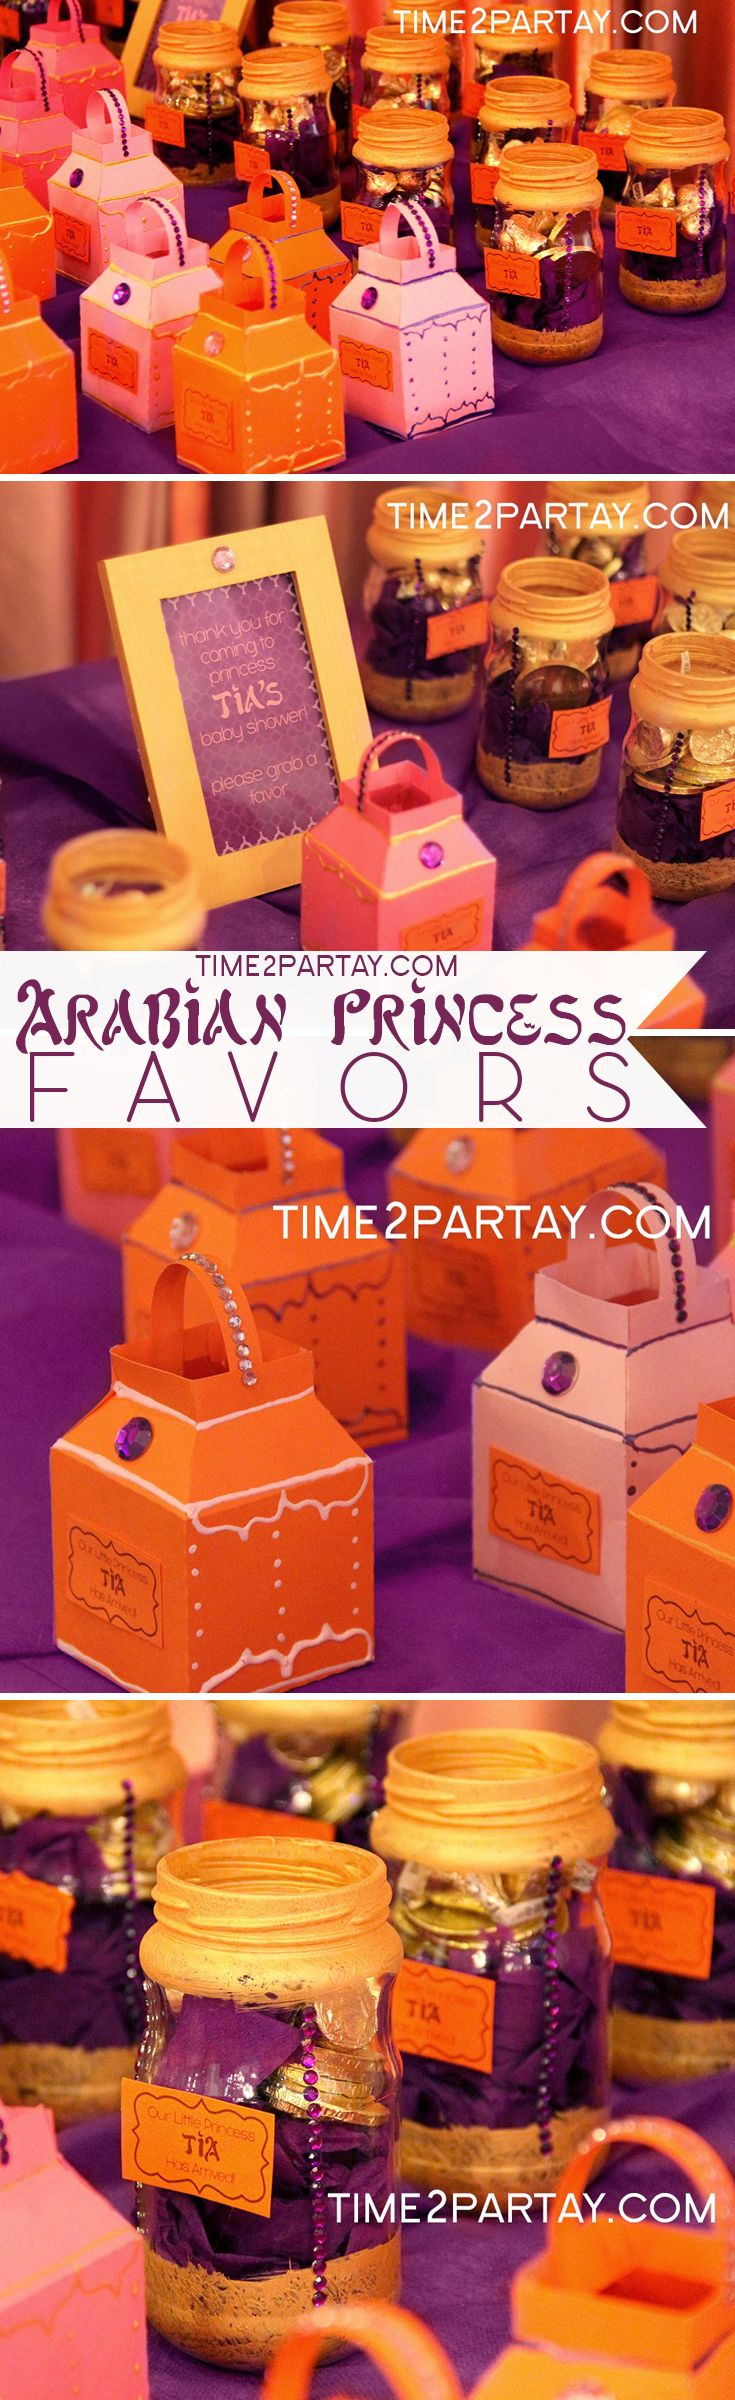 Arabian Princess Tia Has Arrived {A Welcome Baby Party}. Favors to give guests at the end of the party #arabian #princess #jewels #chocolate #favors #giveaways #royal #birthday #baby #shower #party #thankyou #celebration #lanterns